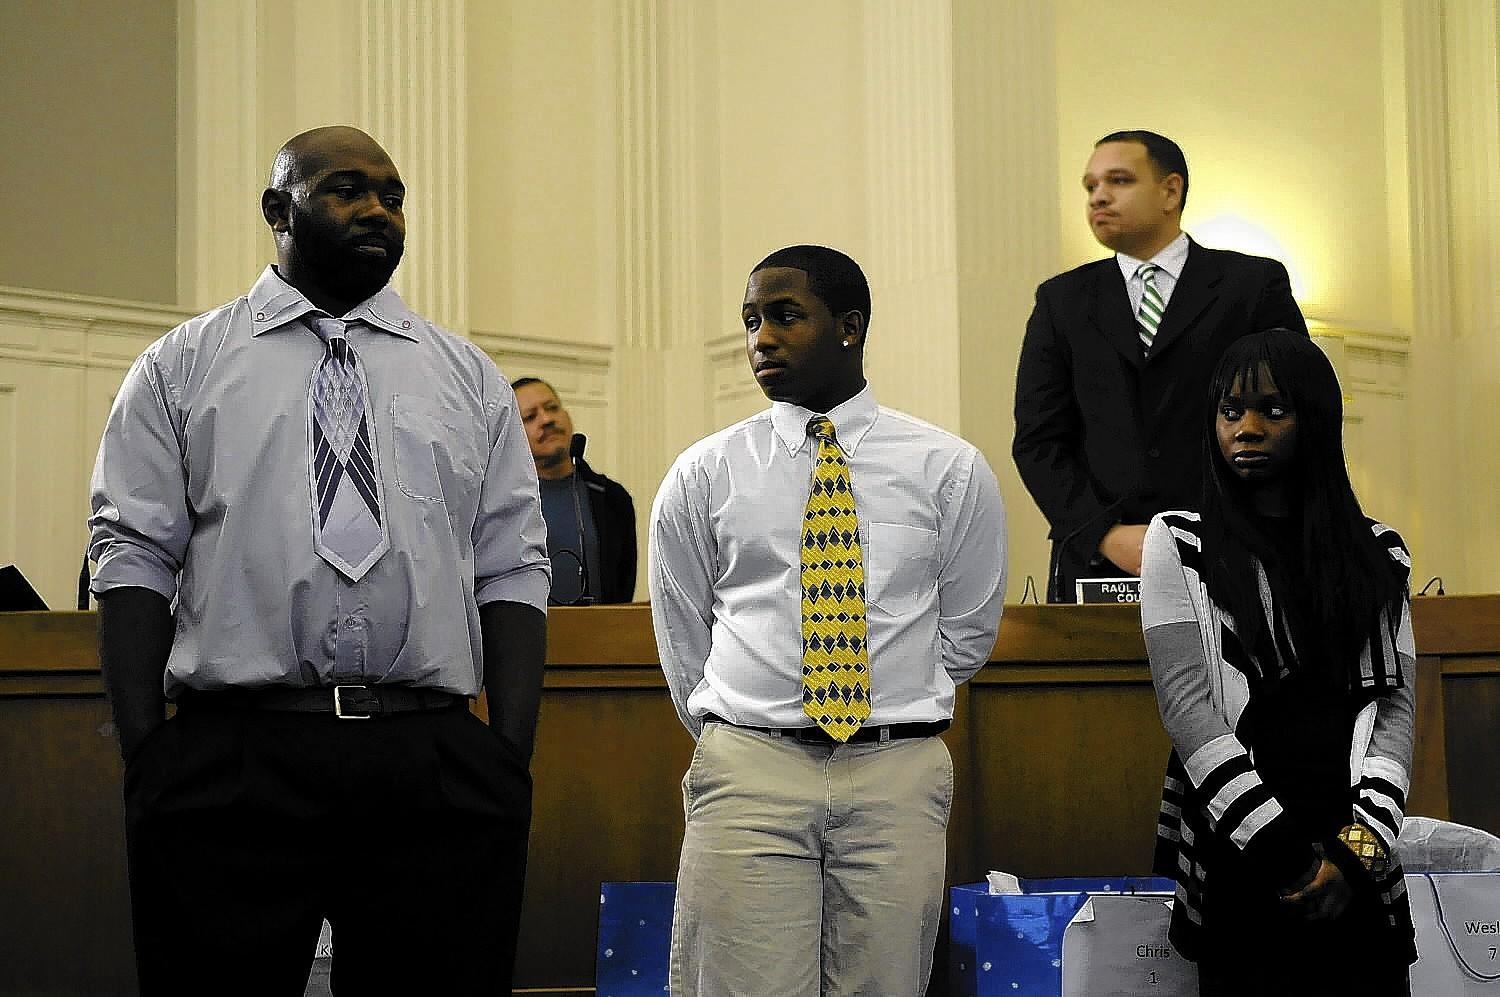 The city honored, left to right, Lamonte Coleman, Christopher Brown and Antwana Tulley for their quick action last week when they saved four adults and 13 children that escape unharmed from a burning building in Hartford. Coleman, a neighbor, knew that Rosemarie Gooden, who is disabled, was still on the second floor of the building. He ran inside and carried her out despite the flames. Tulley lifted 7 of her siblings out a first floor window and brought them to safety while Brown, who lives on the second floor, led his sister outside and also alerted the third-floor residents to the fire. All three were honored at the start of the council meeting at city hall and donated Christmas gifts were given to all the displaced children afterward.